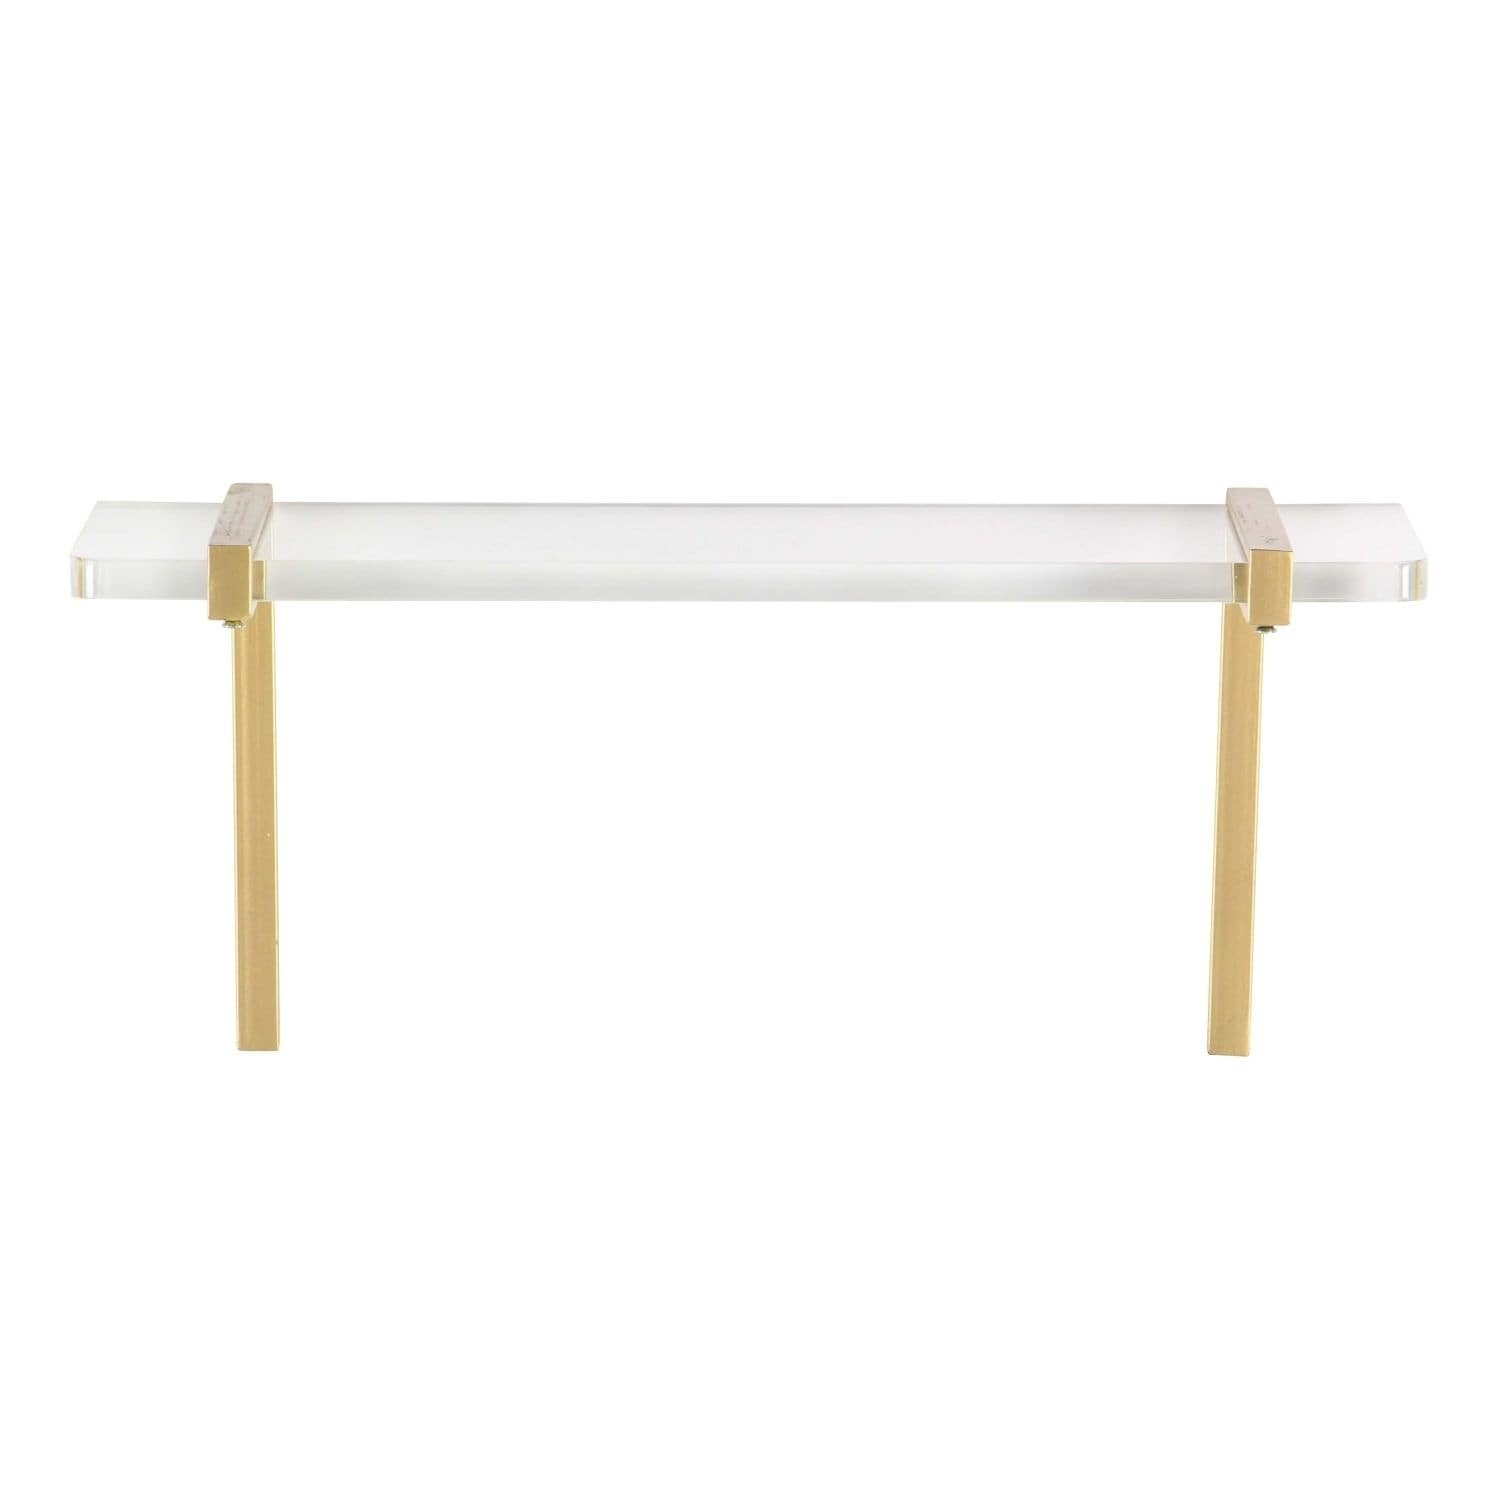 Studio 350 Metal Acrylic Wall Shelf 18 inches wide, 7 inches high